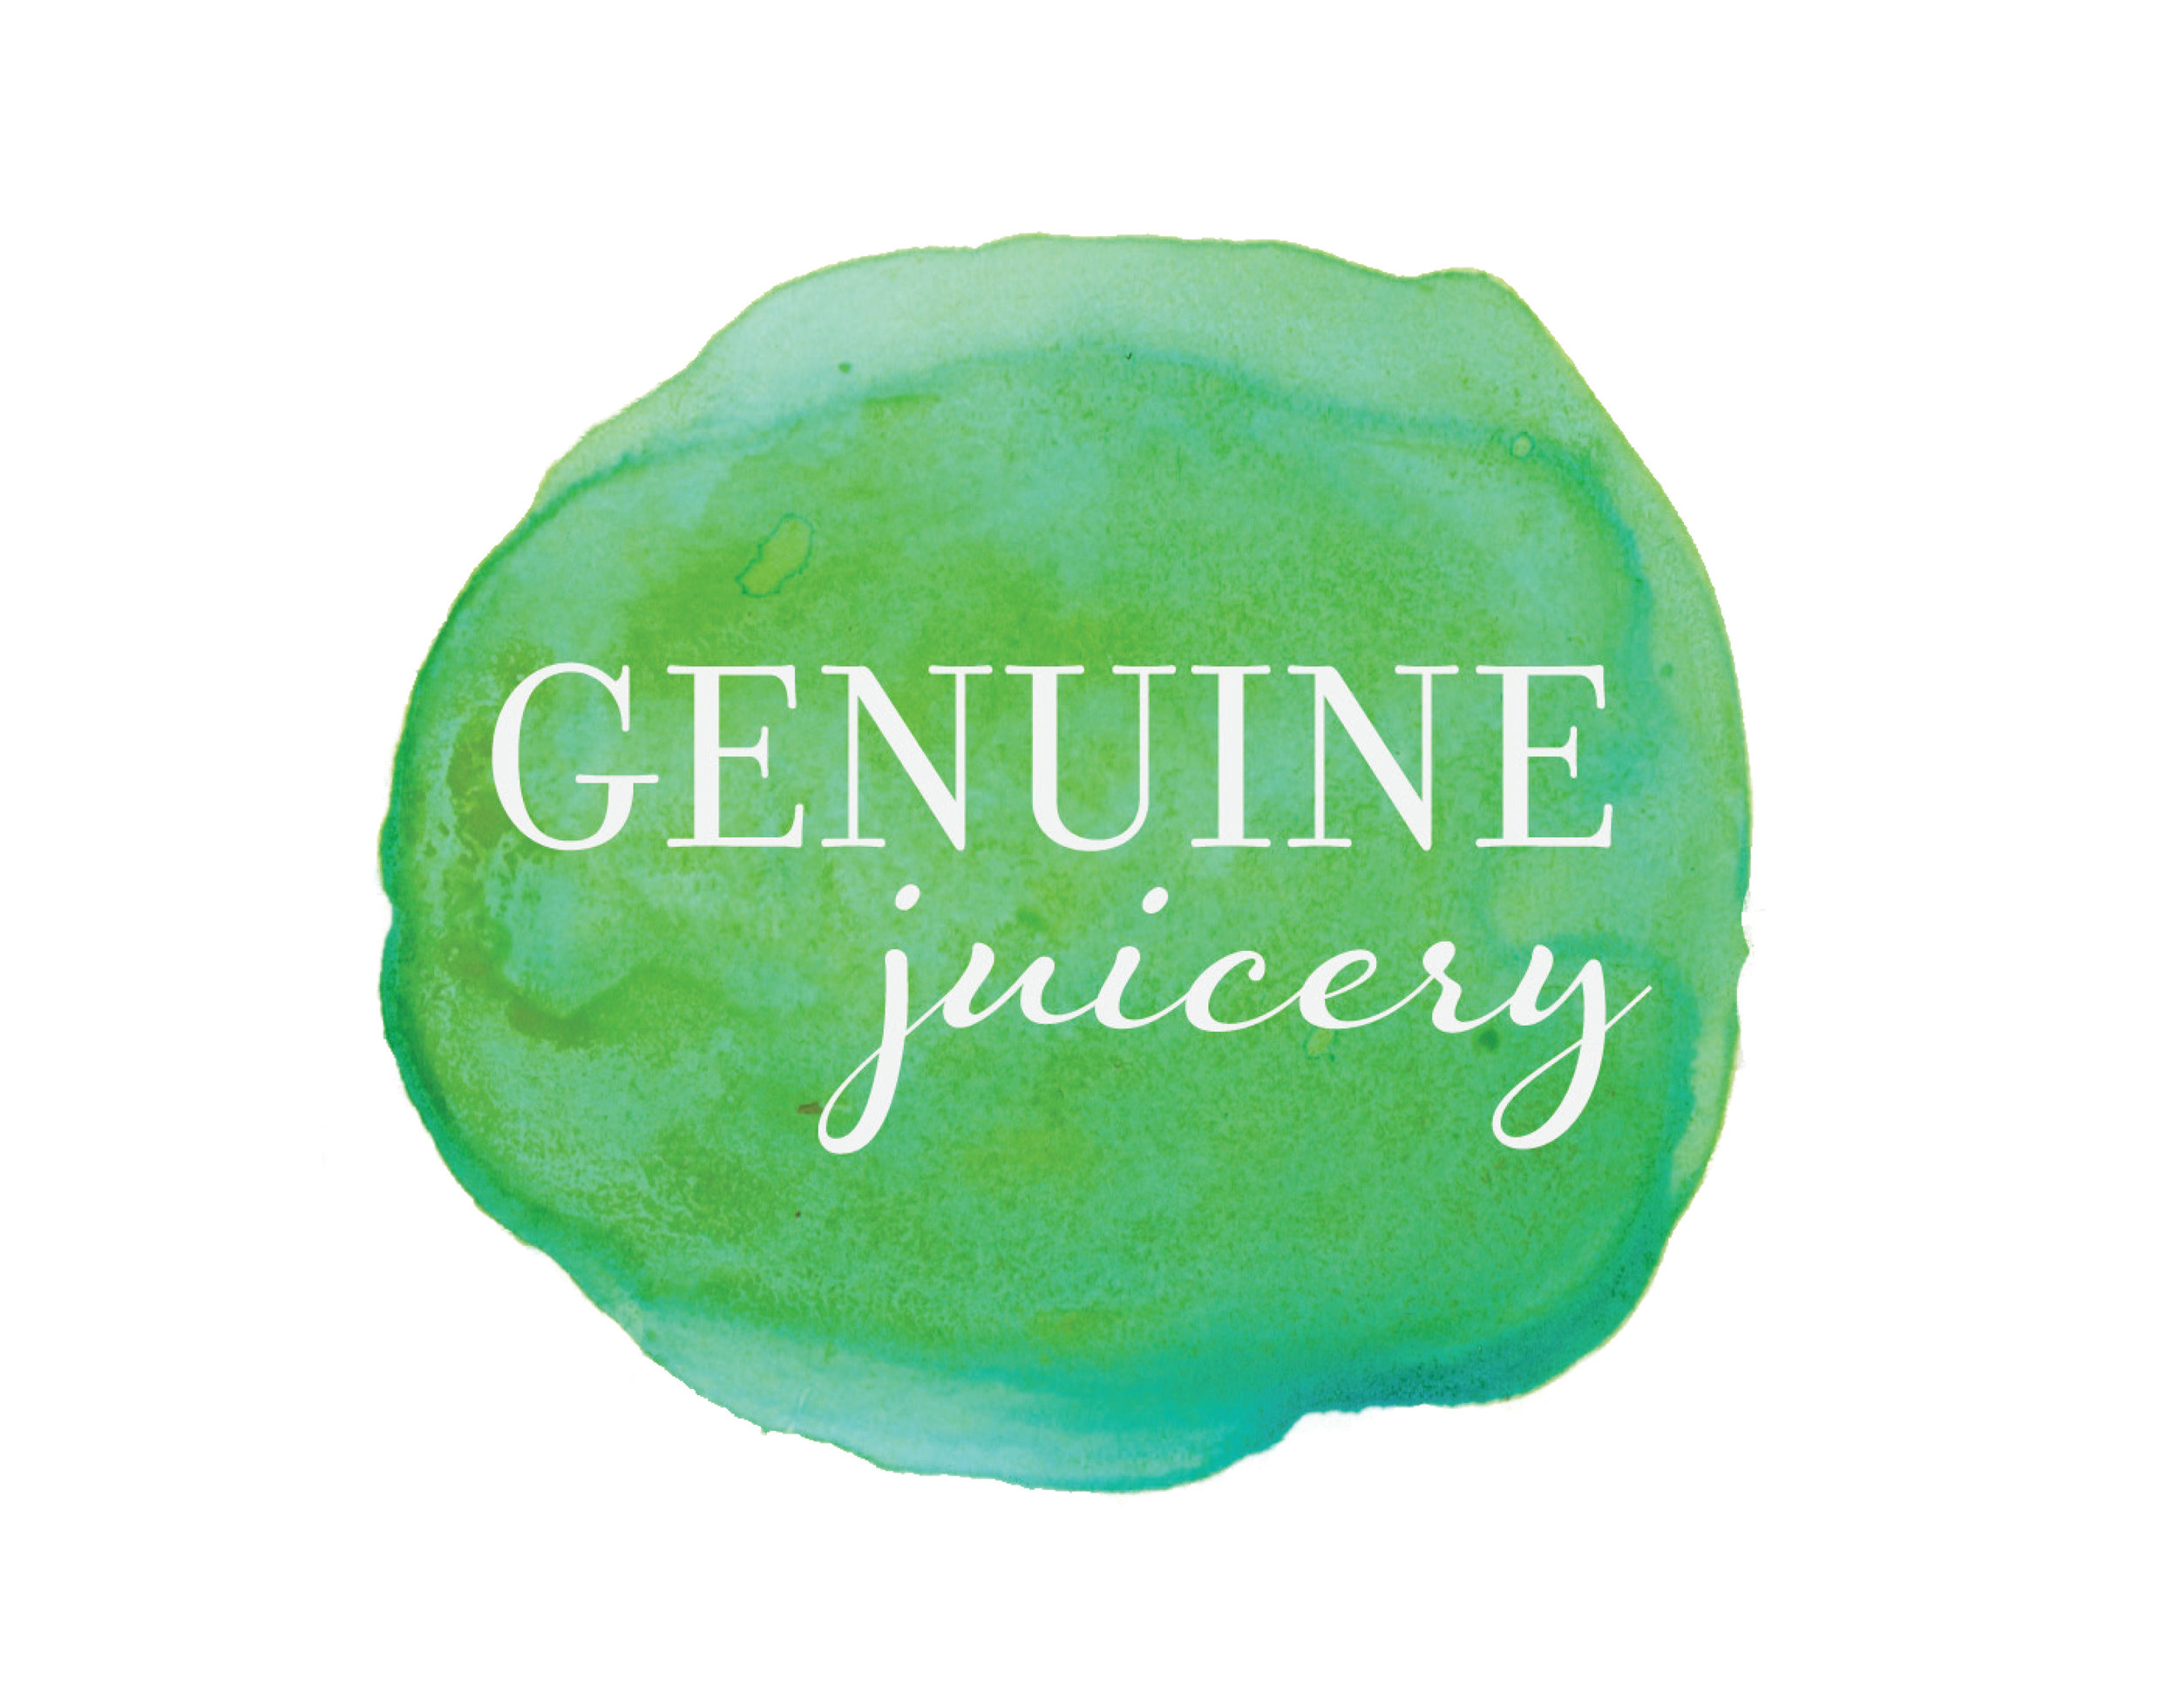 genuine juicery branding book updated_Page_1.jpg